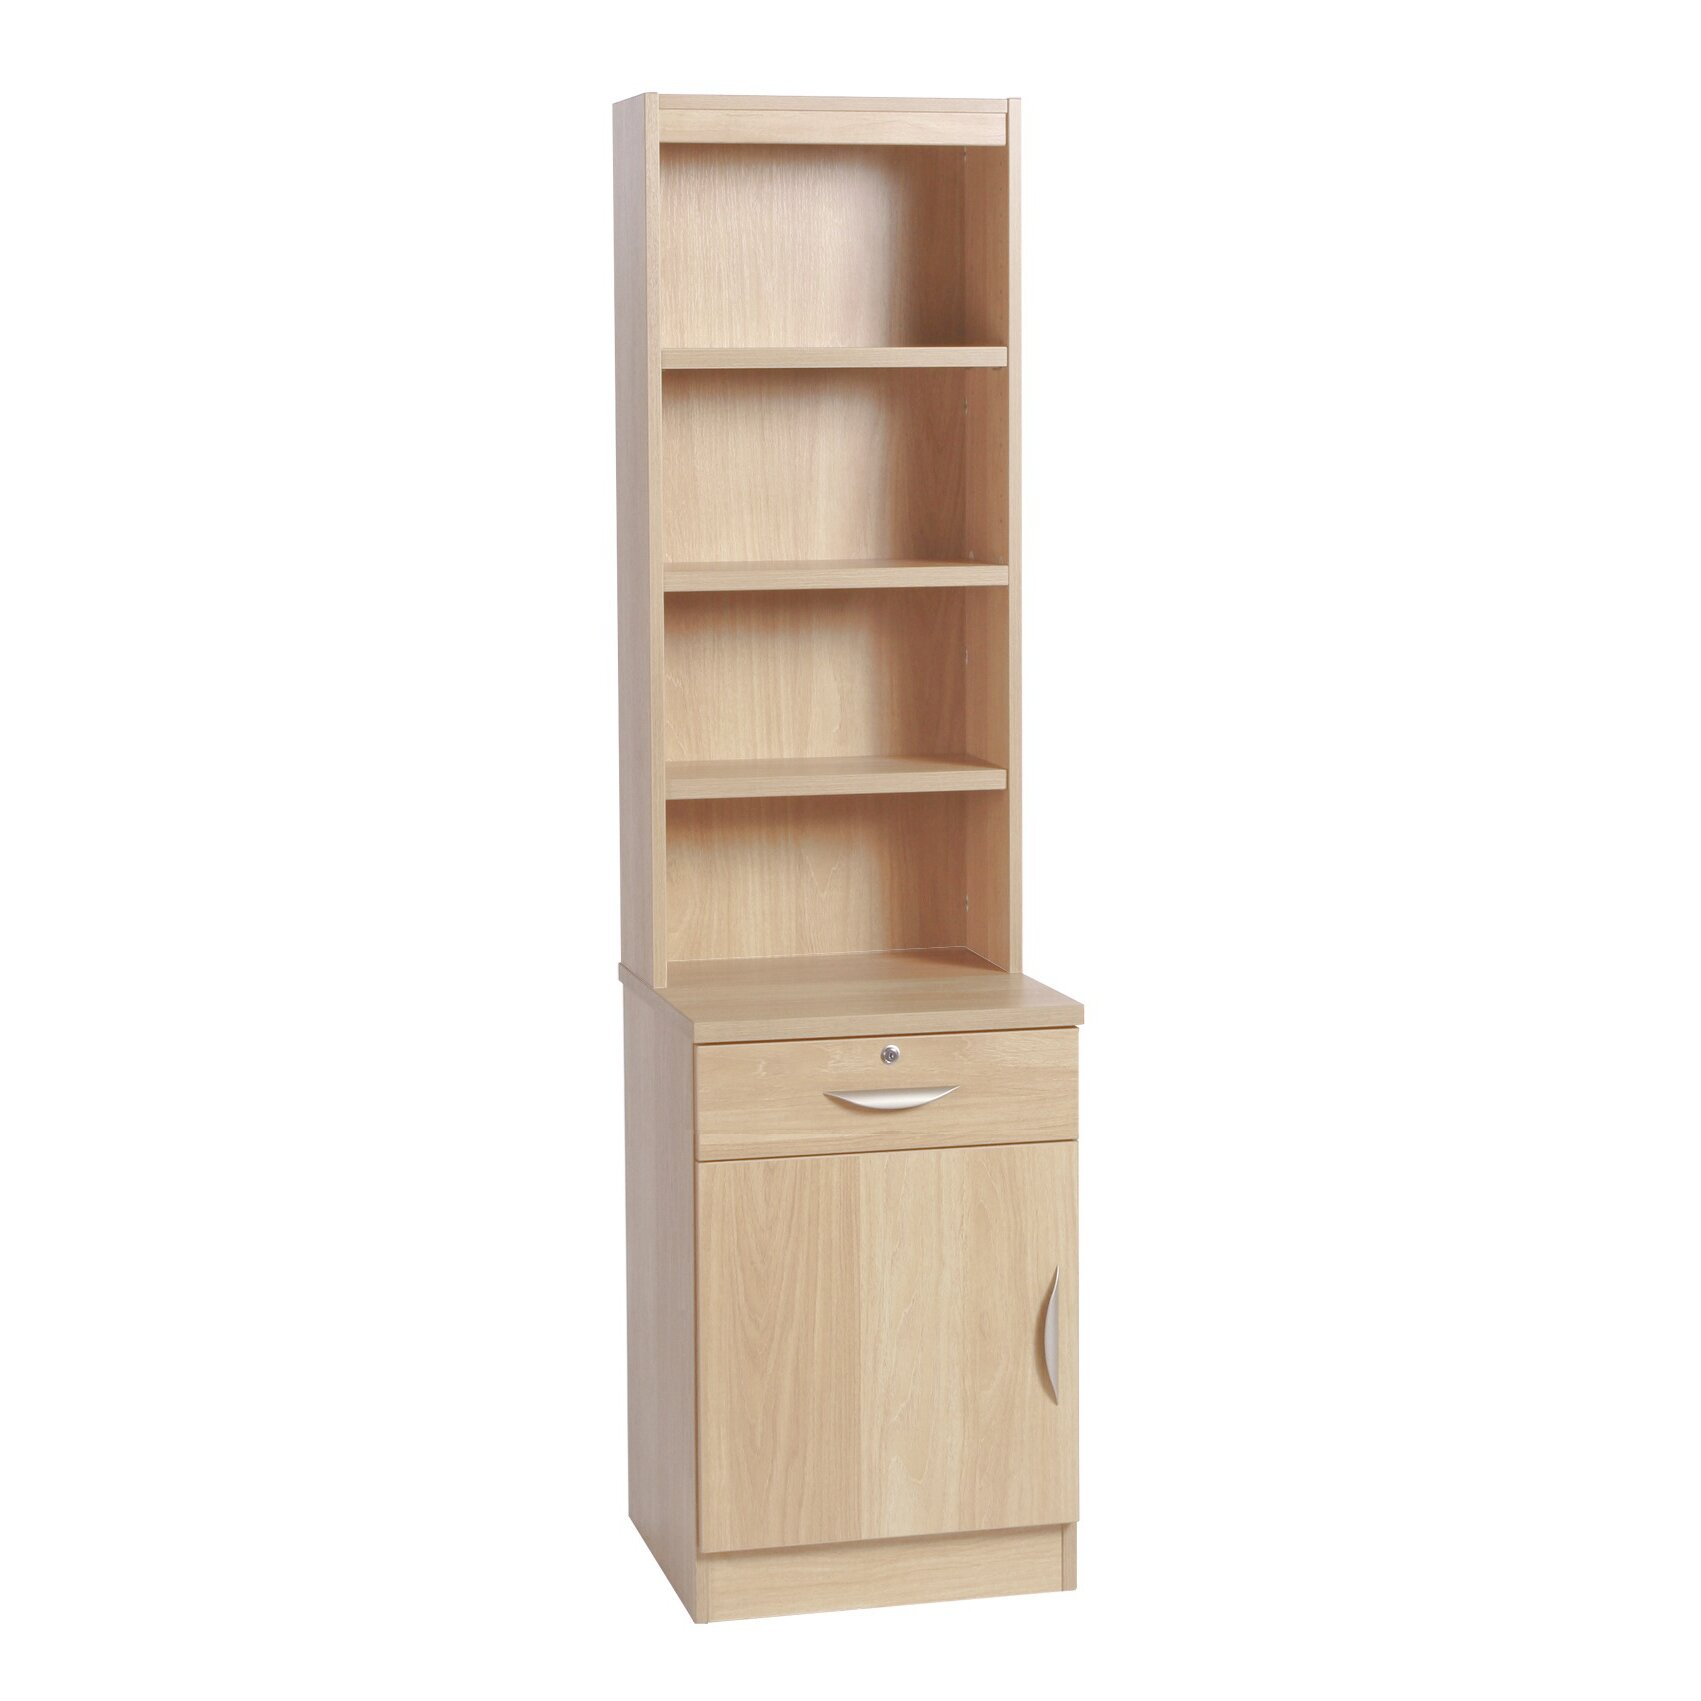 Home office uk 1 door storage cabinet with hutch wayfair uk for 1 door cabinet